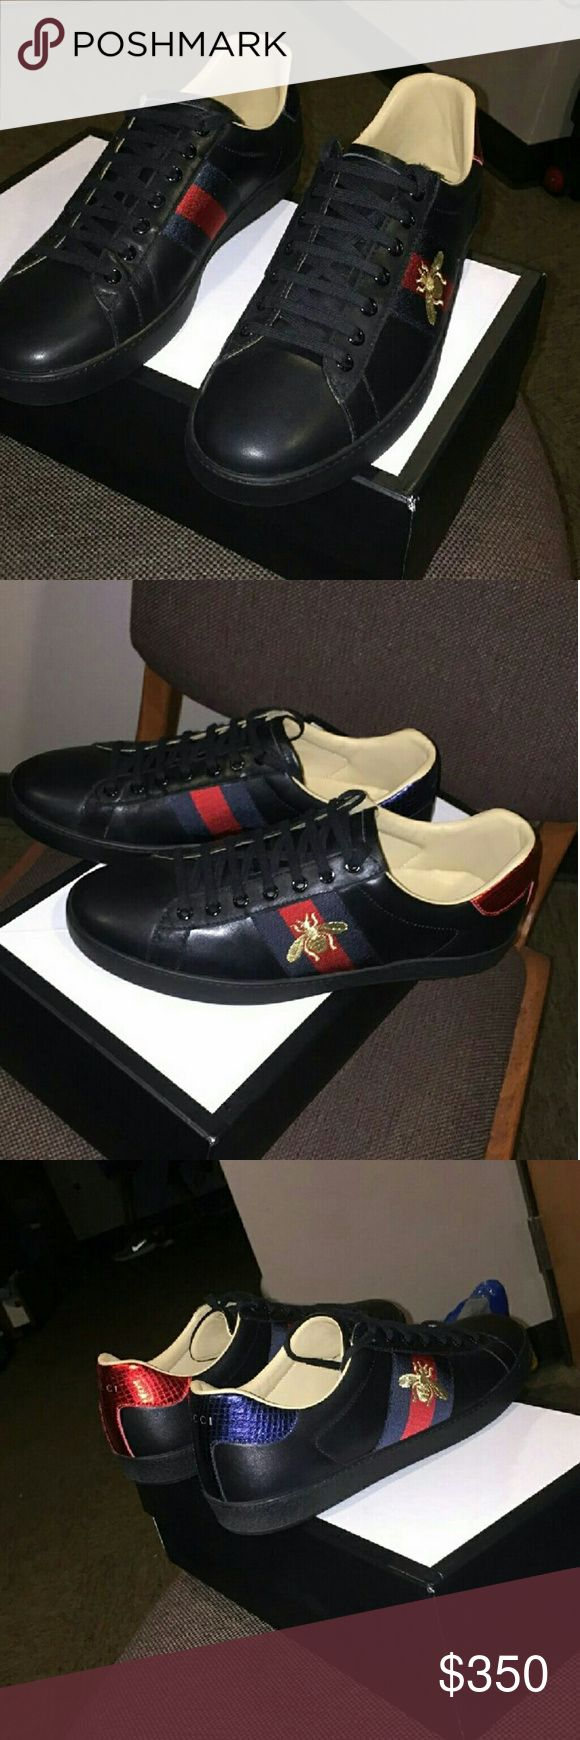 Gucci shoes I have sizes 6-13 Available! Please text me at 7736887376 to see if I still have your size in stock or for more pictures before purchase ! 100% authentic  comes with Box & Dustbags  Price is Negotiable! Serious Inquires only! Gucci Shoes Sneakers